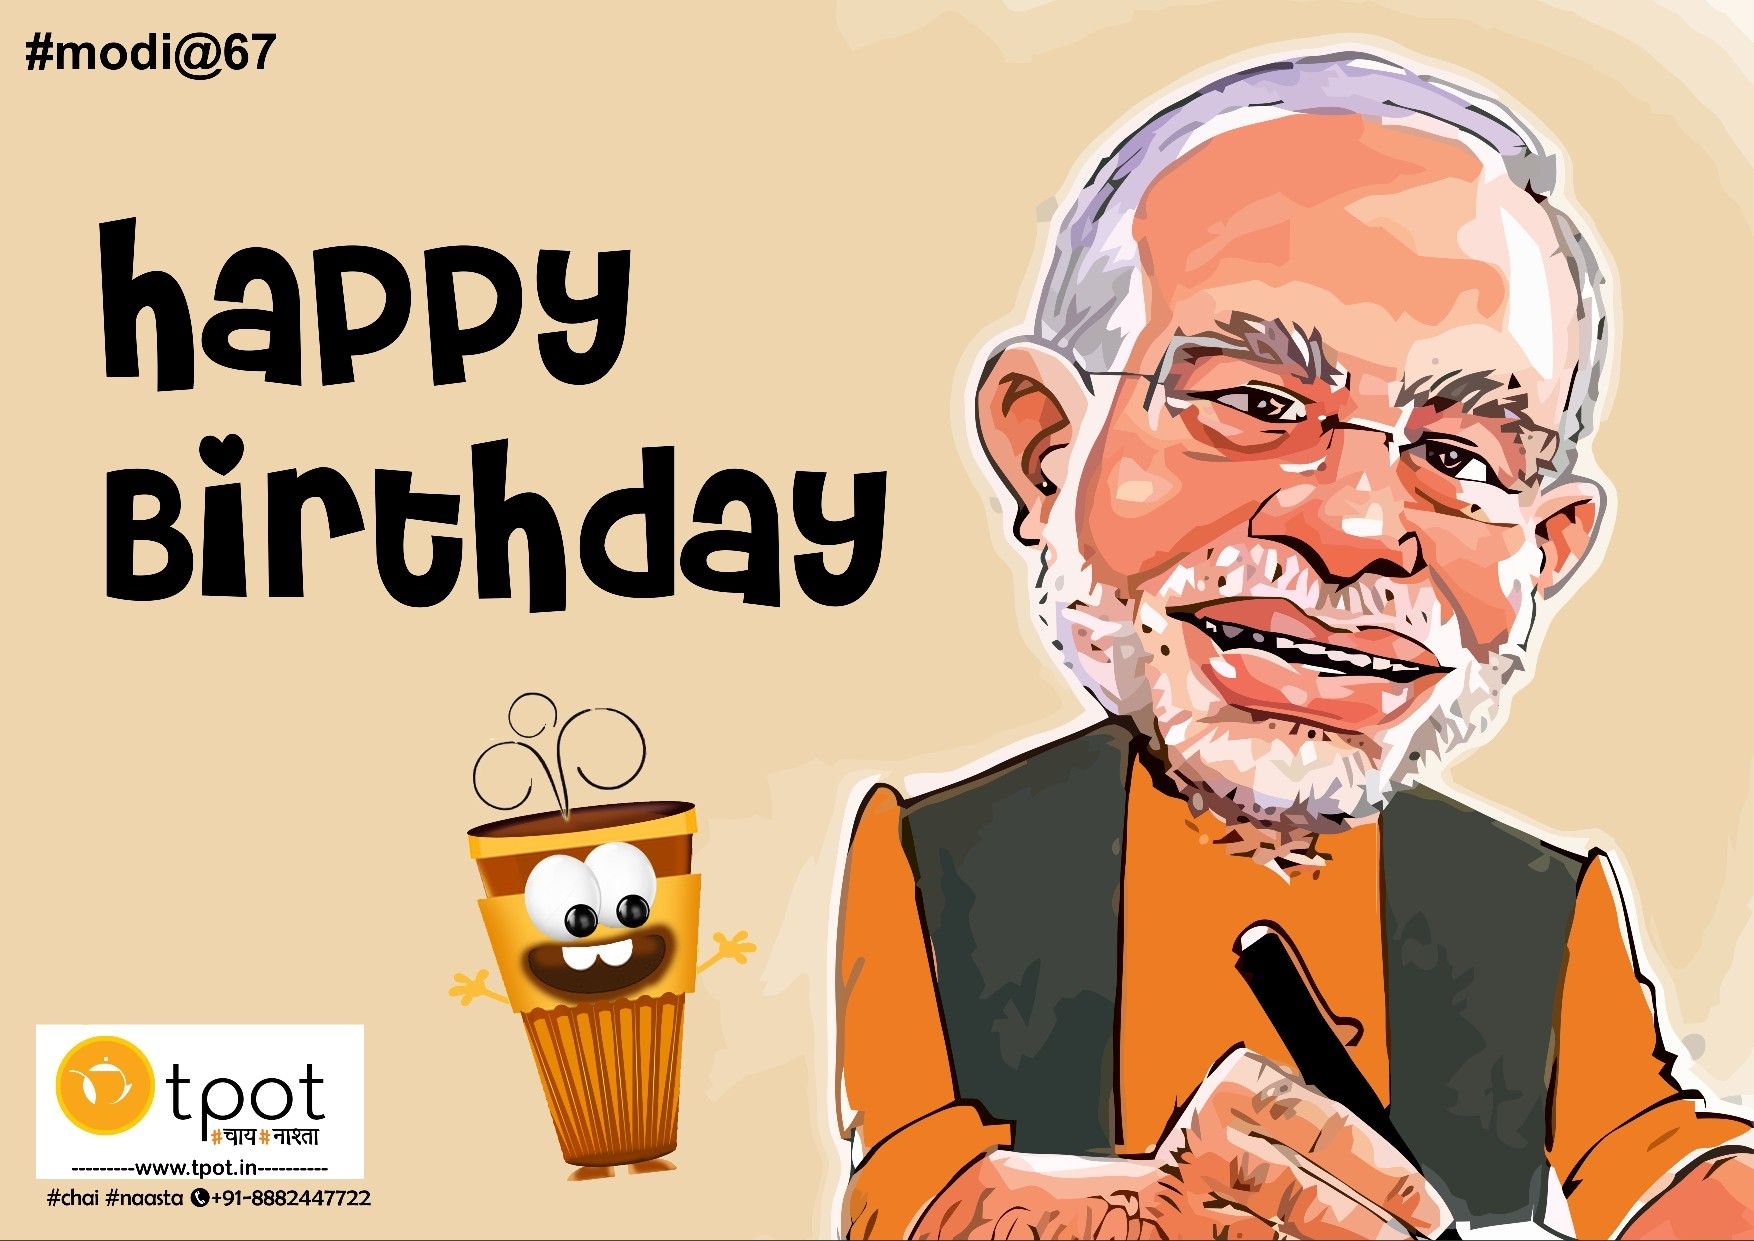 Our warm greetings to PM Modi on his birthday, may he take